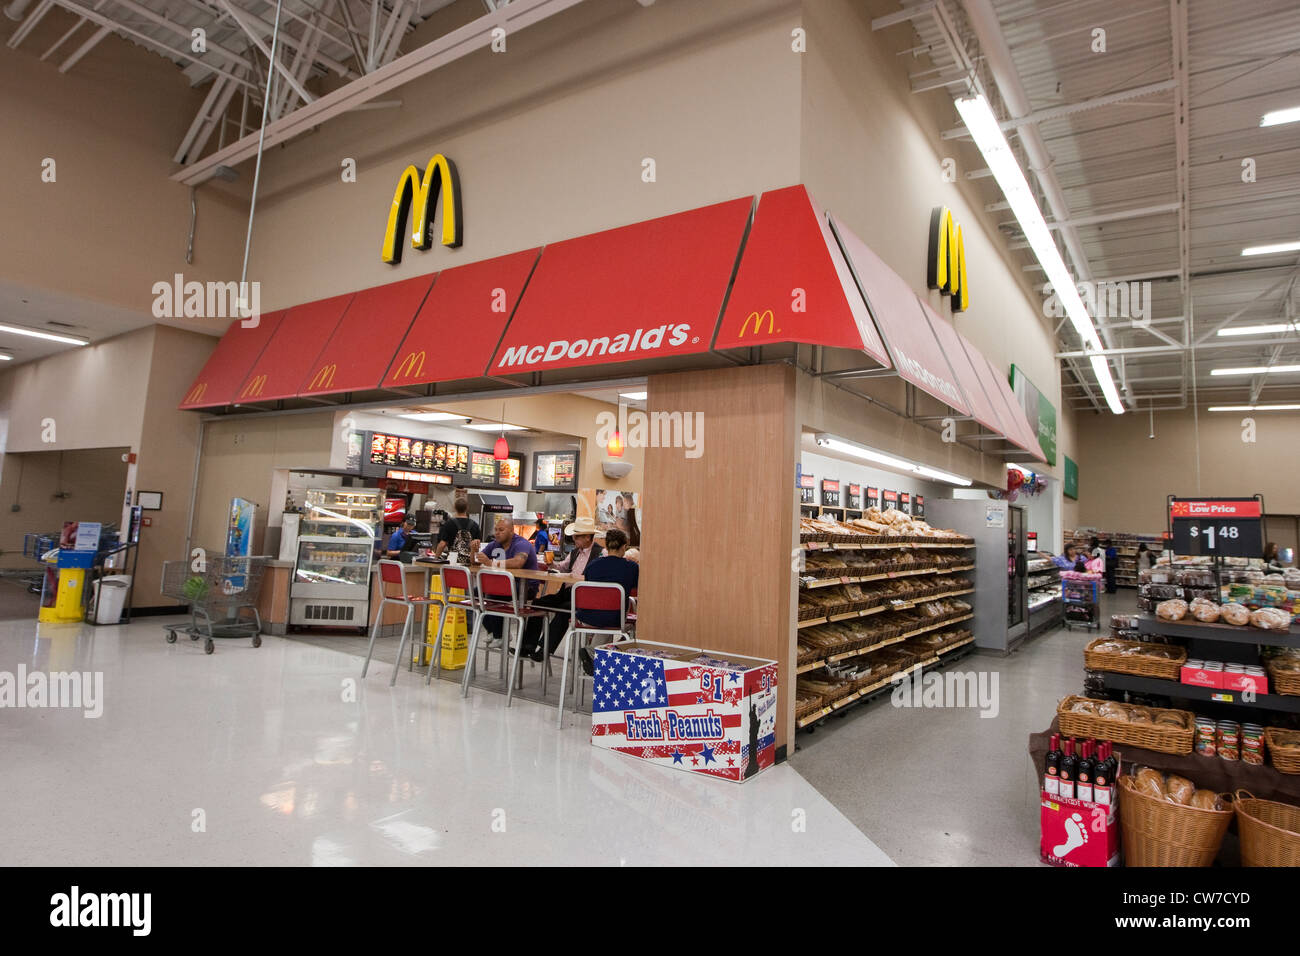 McDonald's restaurant inside a Wal-Mart Supercenter in San Marcos, Texas - Stock Image